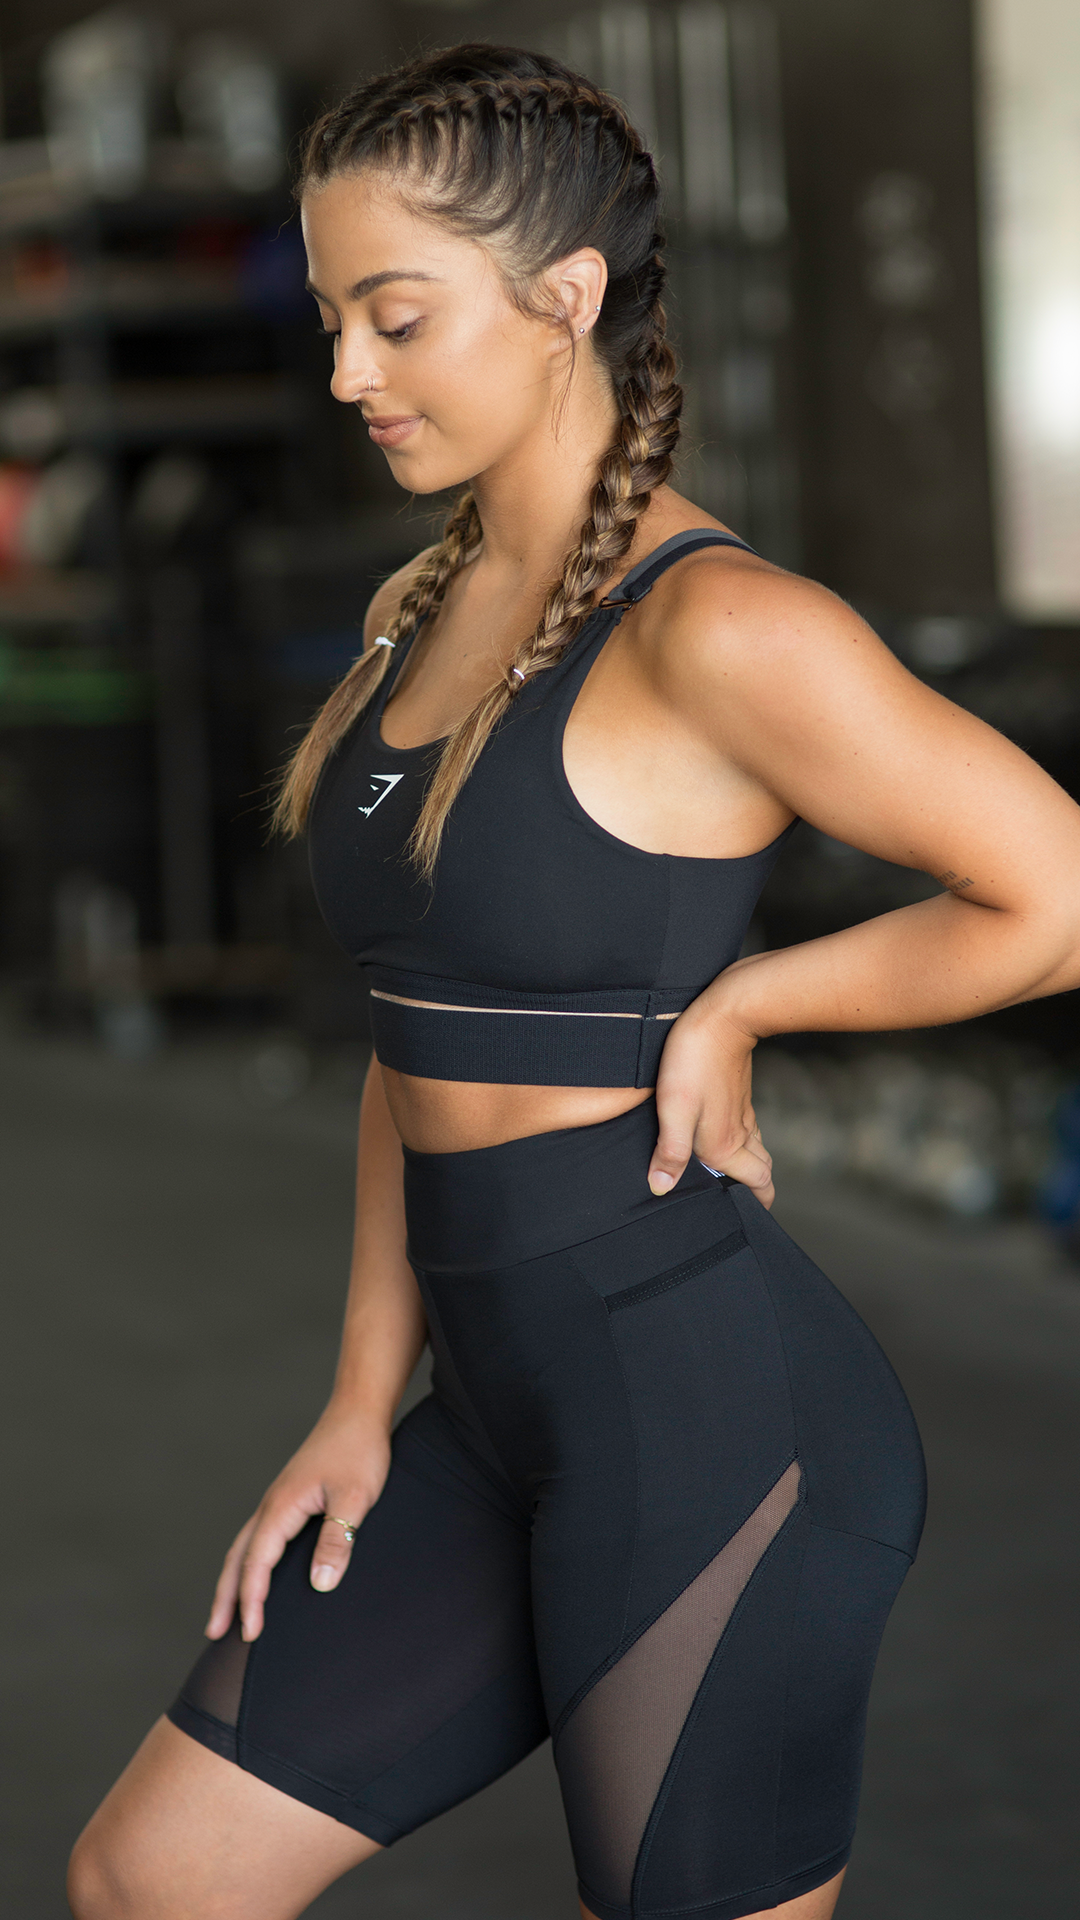 Go Monochrome And Match Your Elevate Sports Bra And Cycling Shorts For The Ultimate Outfit Inspo Gymsh Sports Day Outfit Womens Workout Outfits Sport Outfits